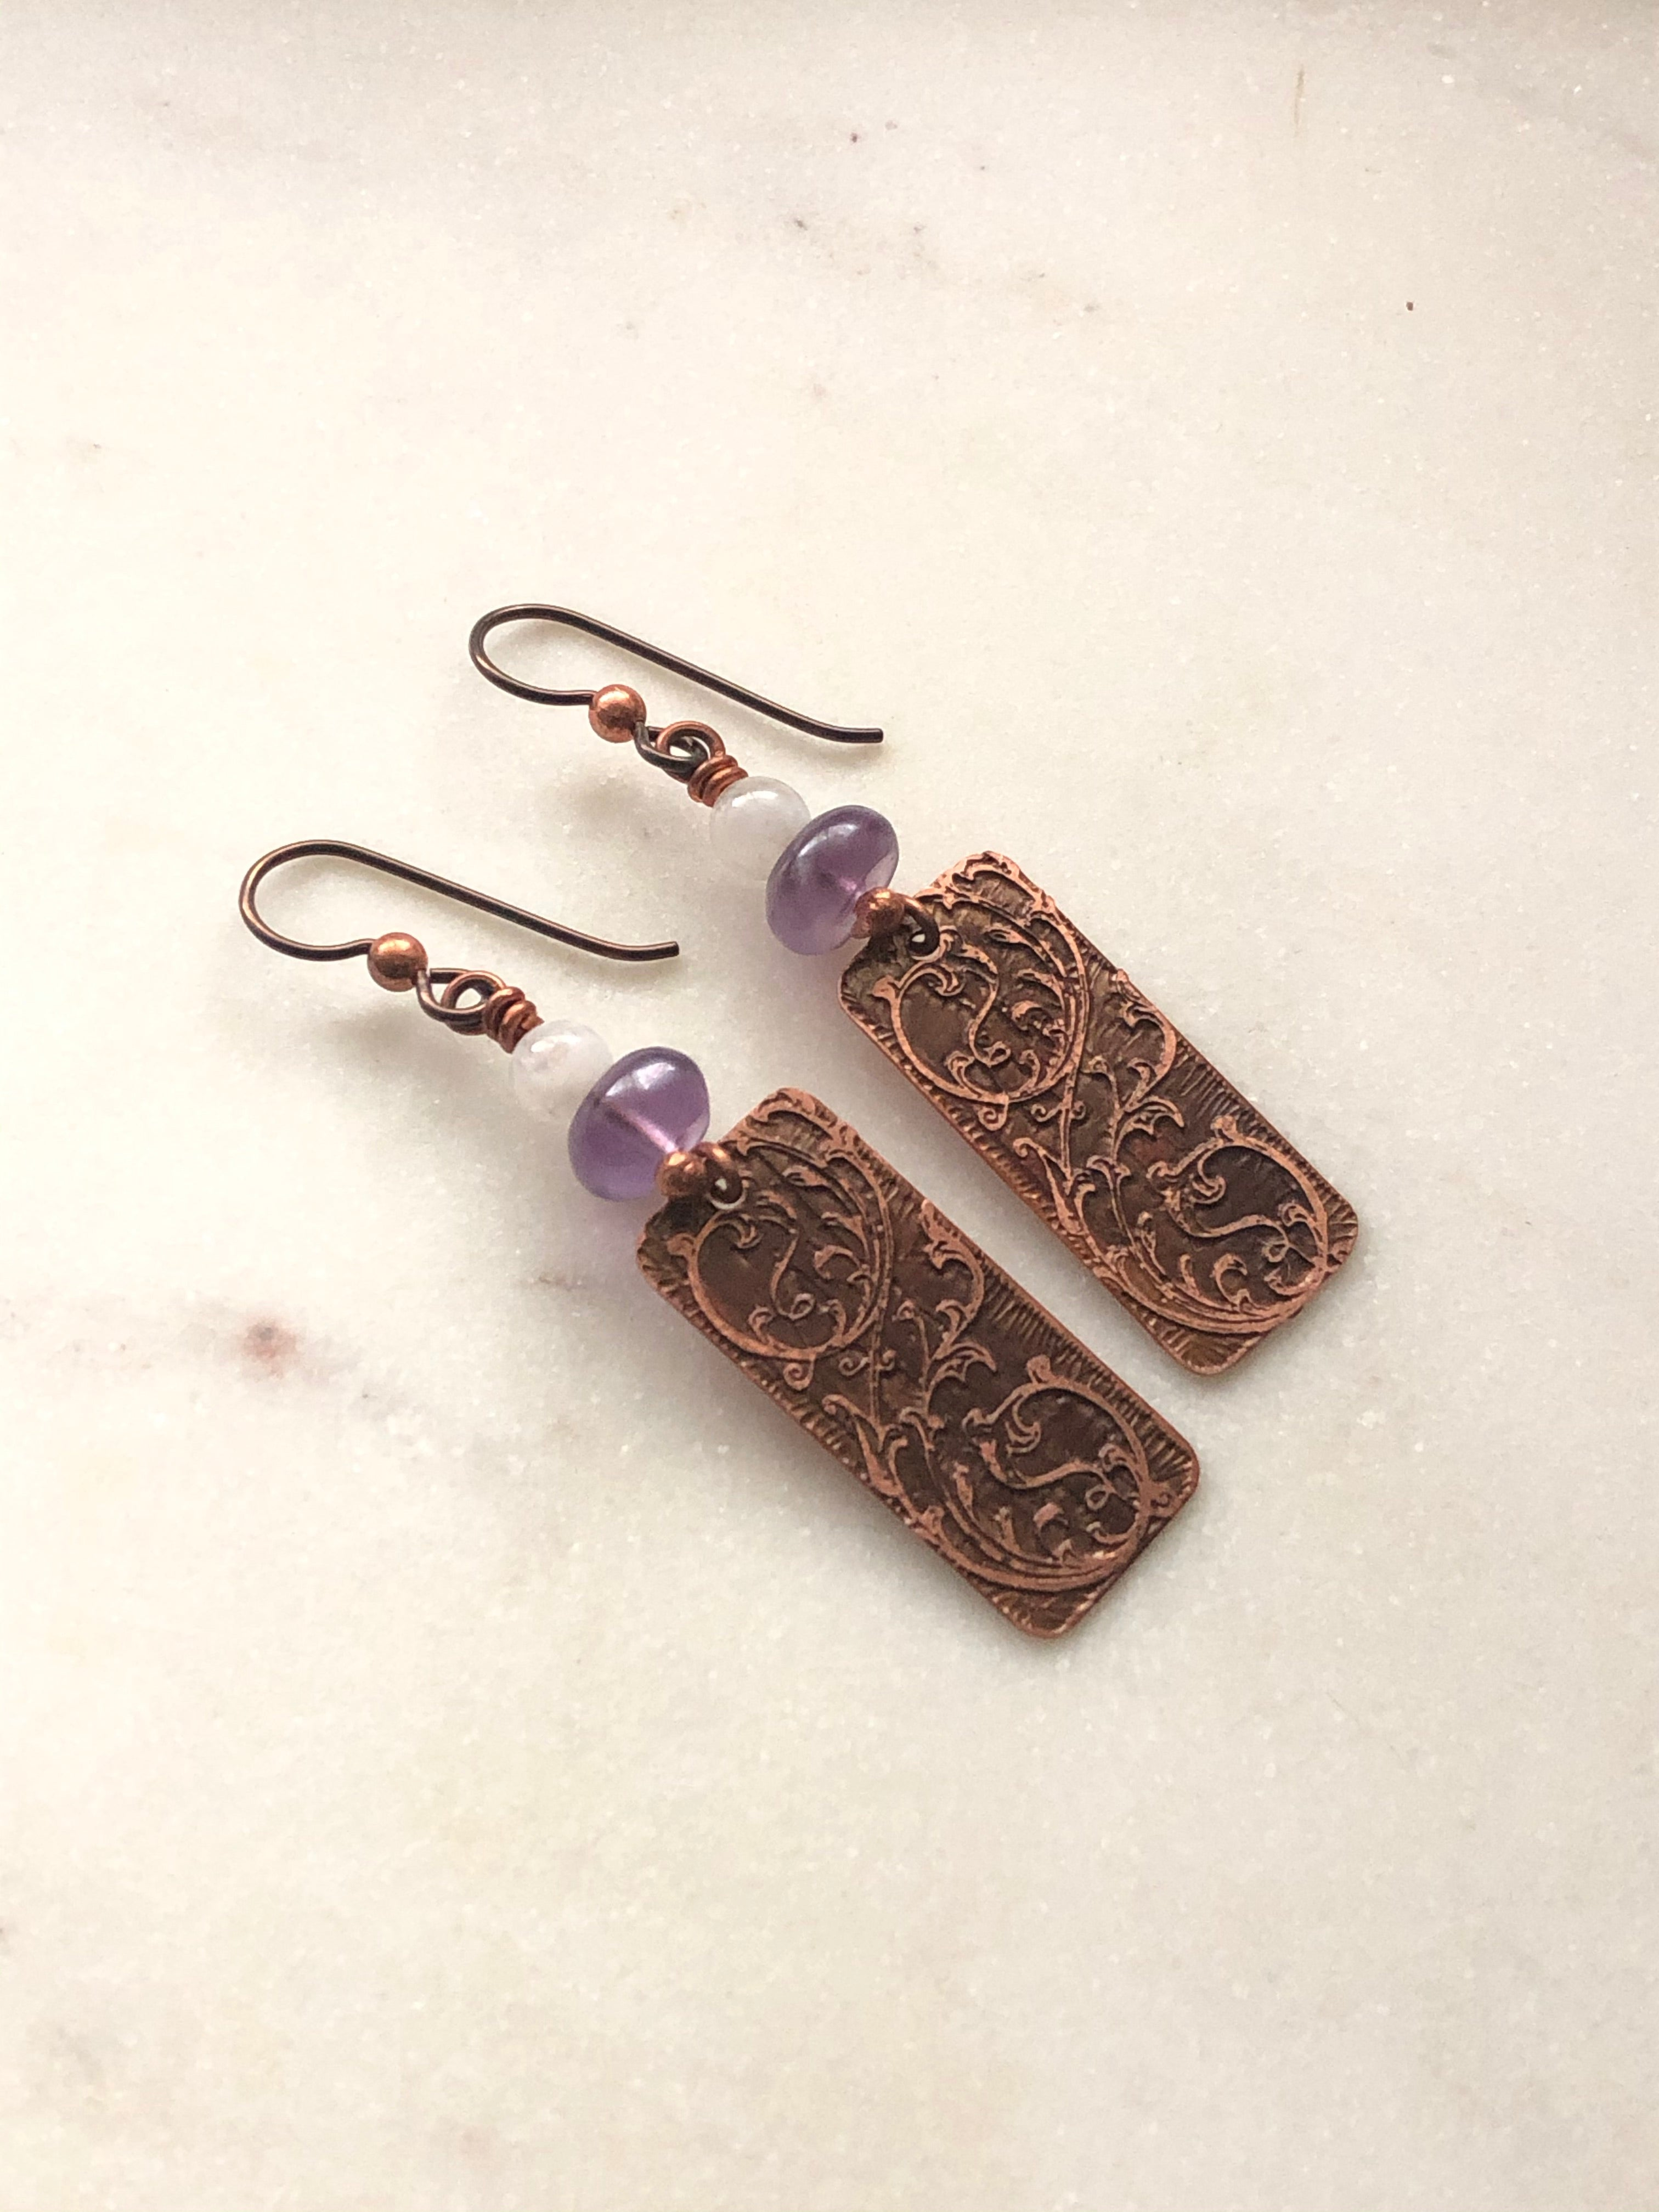 Acid etched copper swirl earrings with amethyst and moonstone gemstones